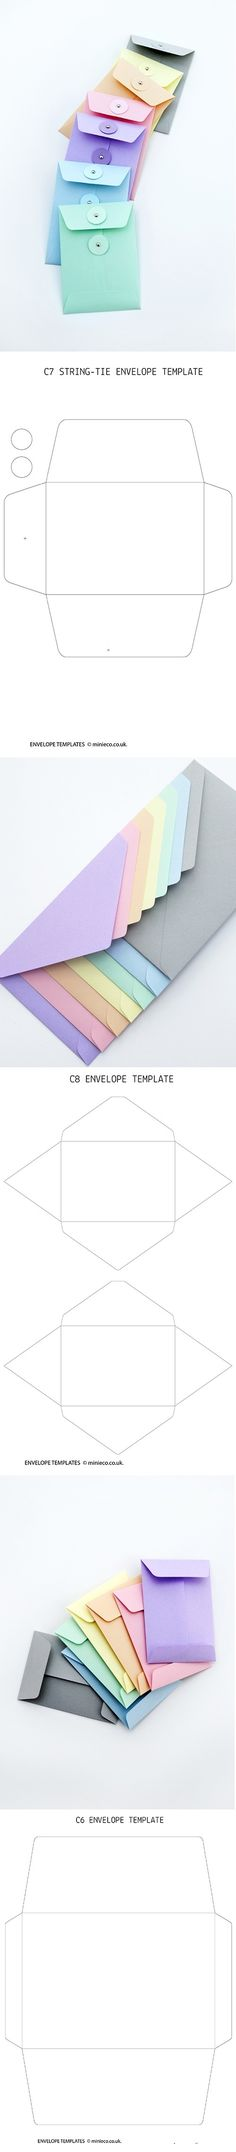 Colored envelopes that coordinate with project layout